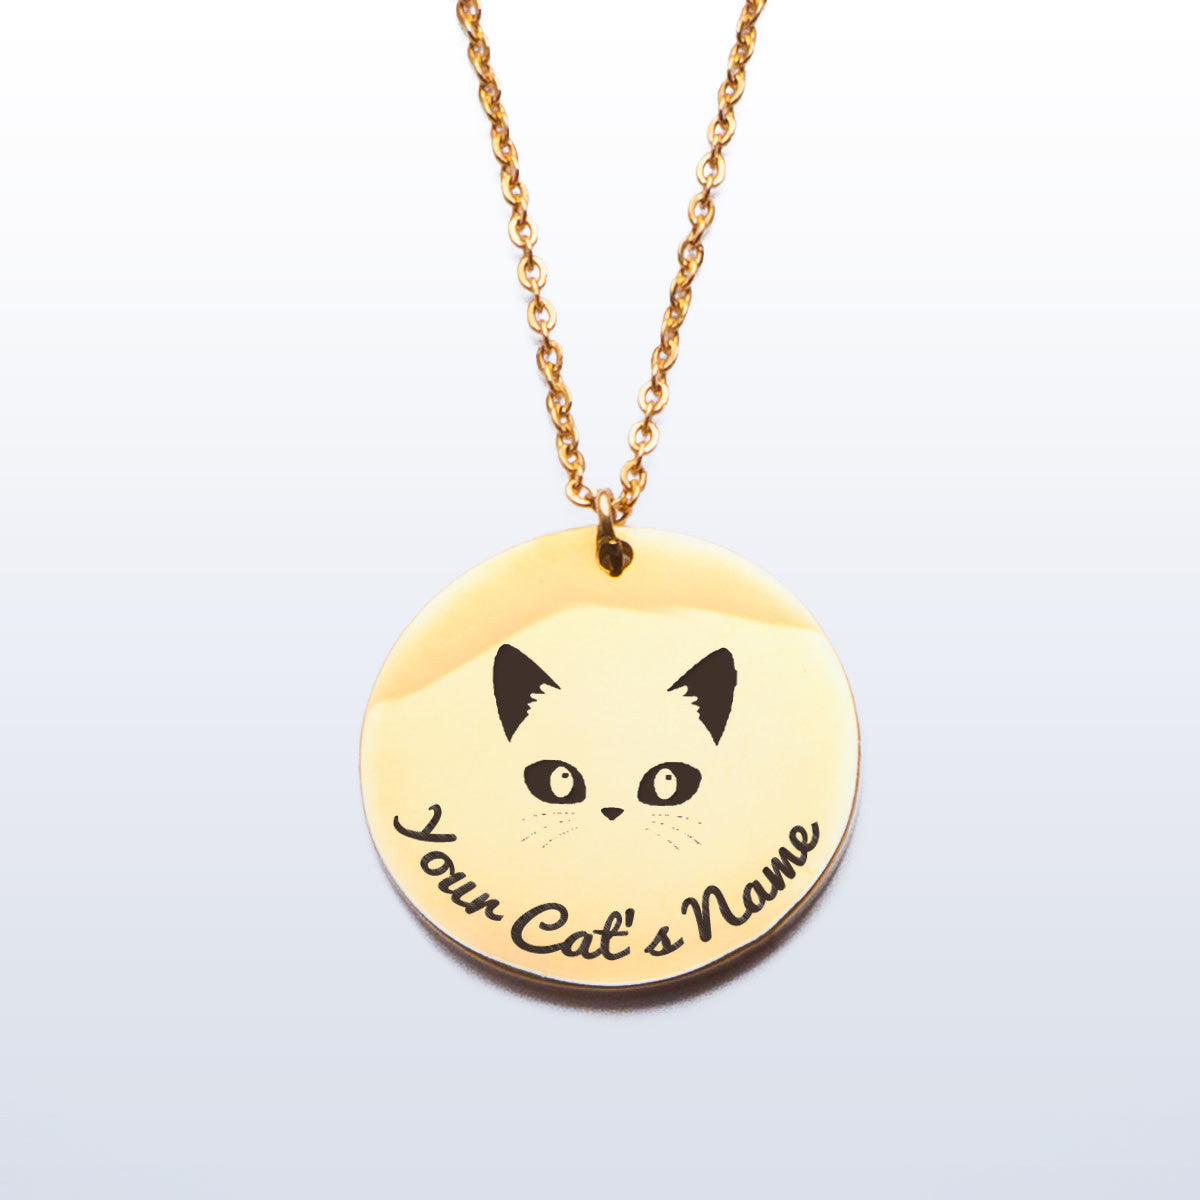 Handcrafted Stainless Steel Pendant for Cat Lovers